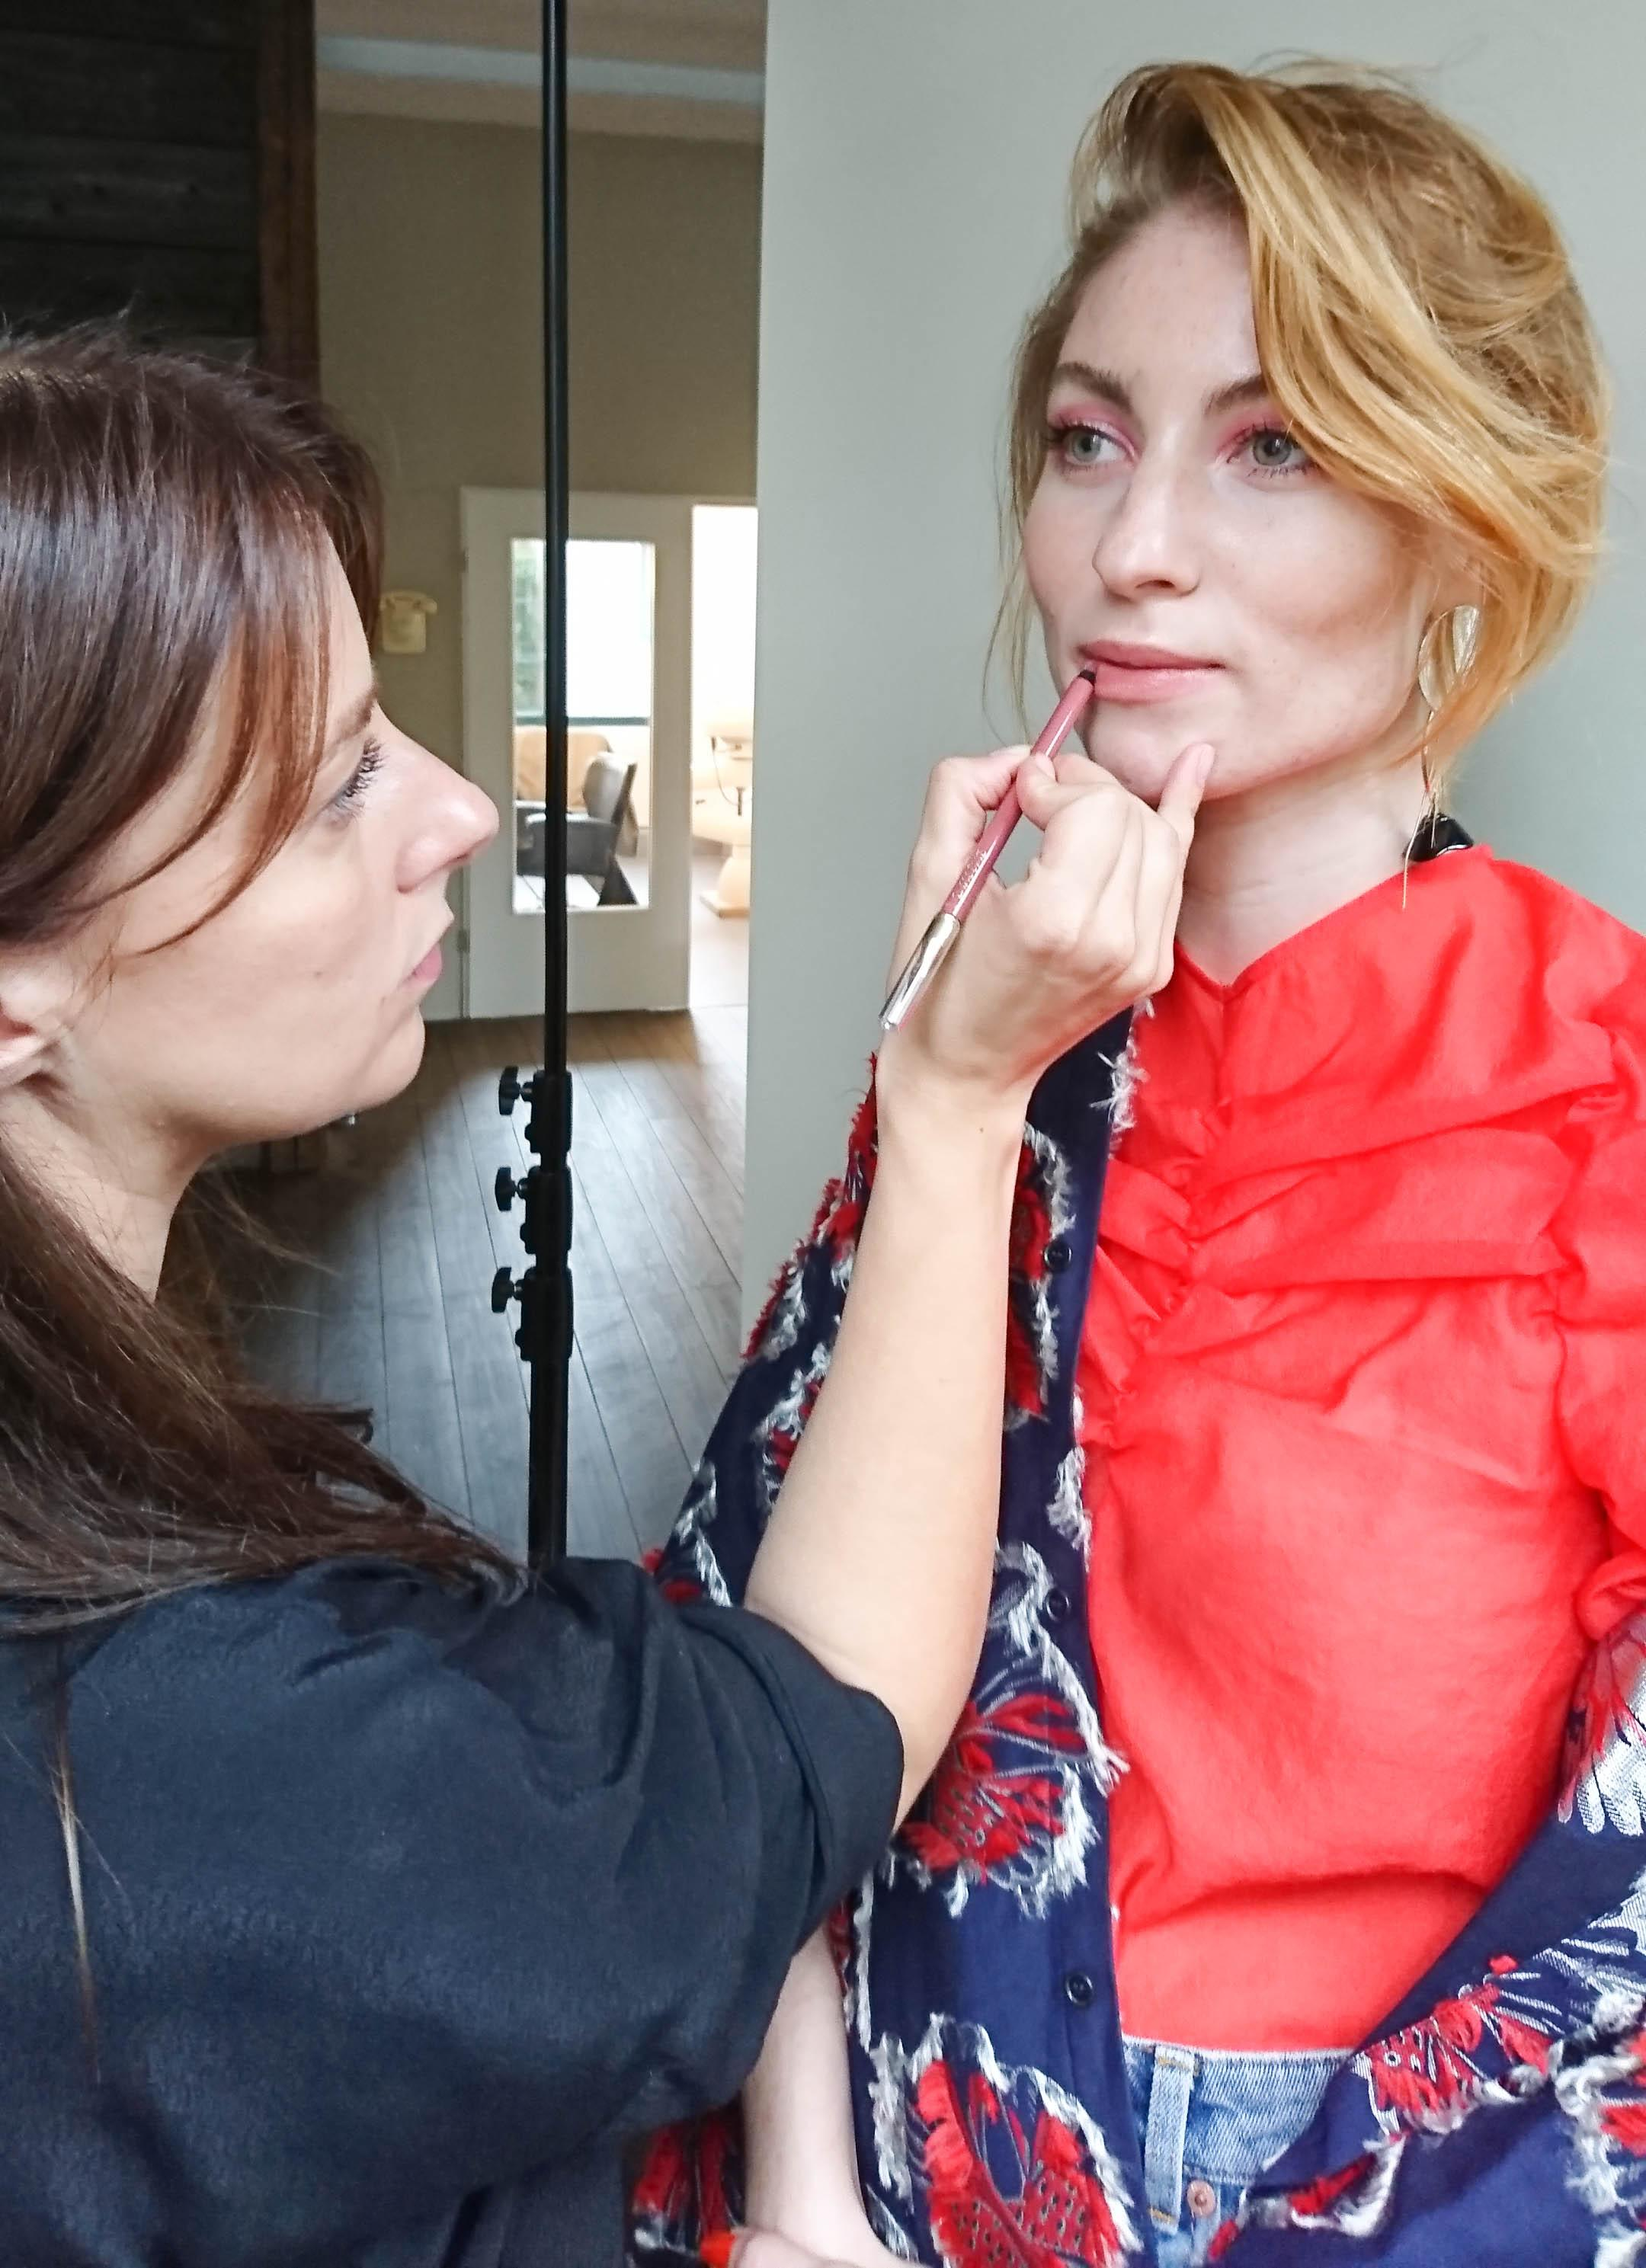 Touch-Up während des Shootings #lisabanholzerbeauty #bloggerbazaar #couchliebt #behindthescenes #nude #makeup